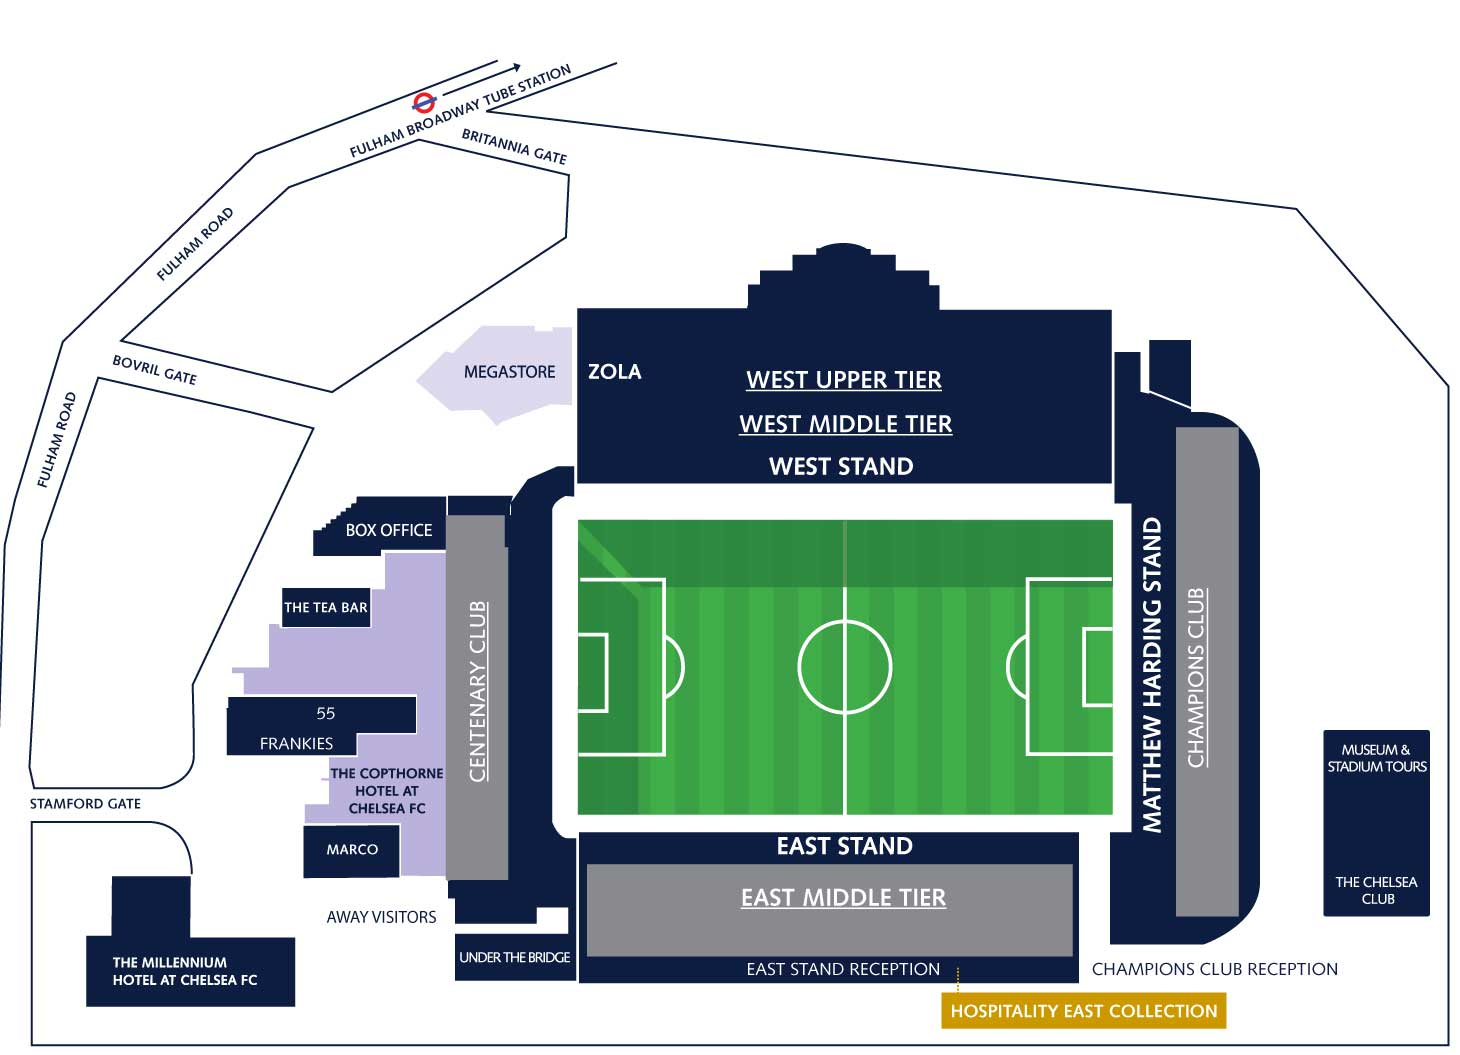 Plano del estadio Stamford Bridge